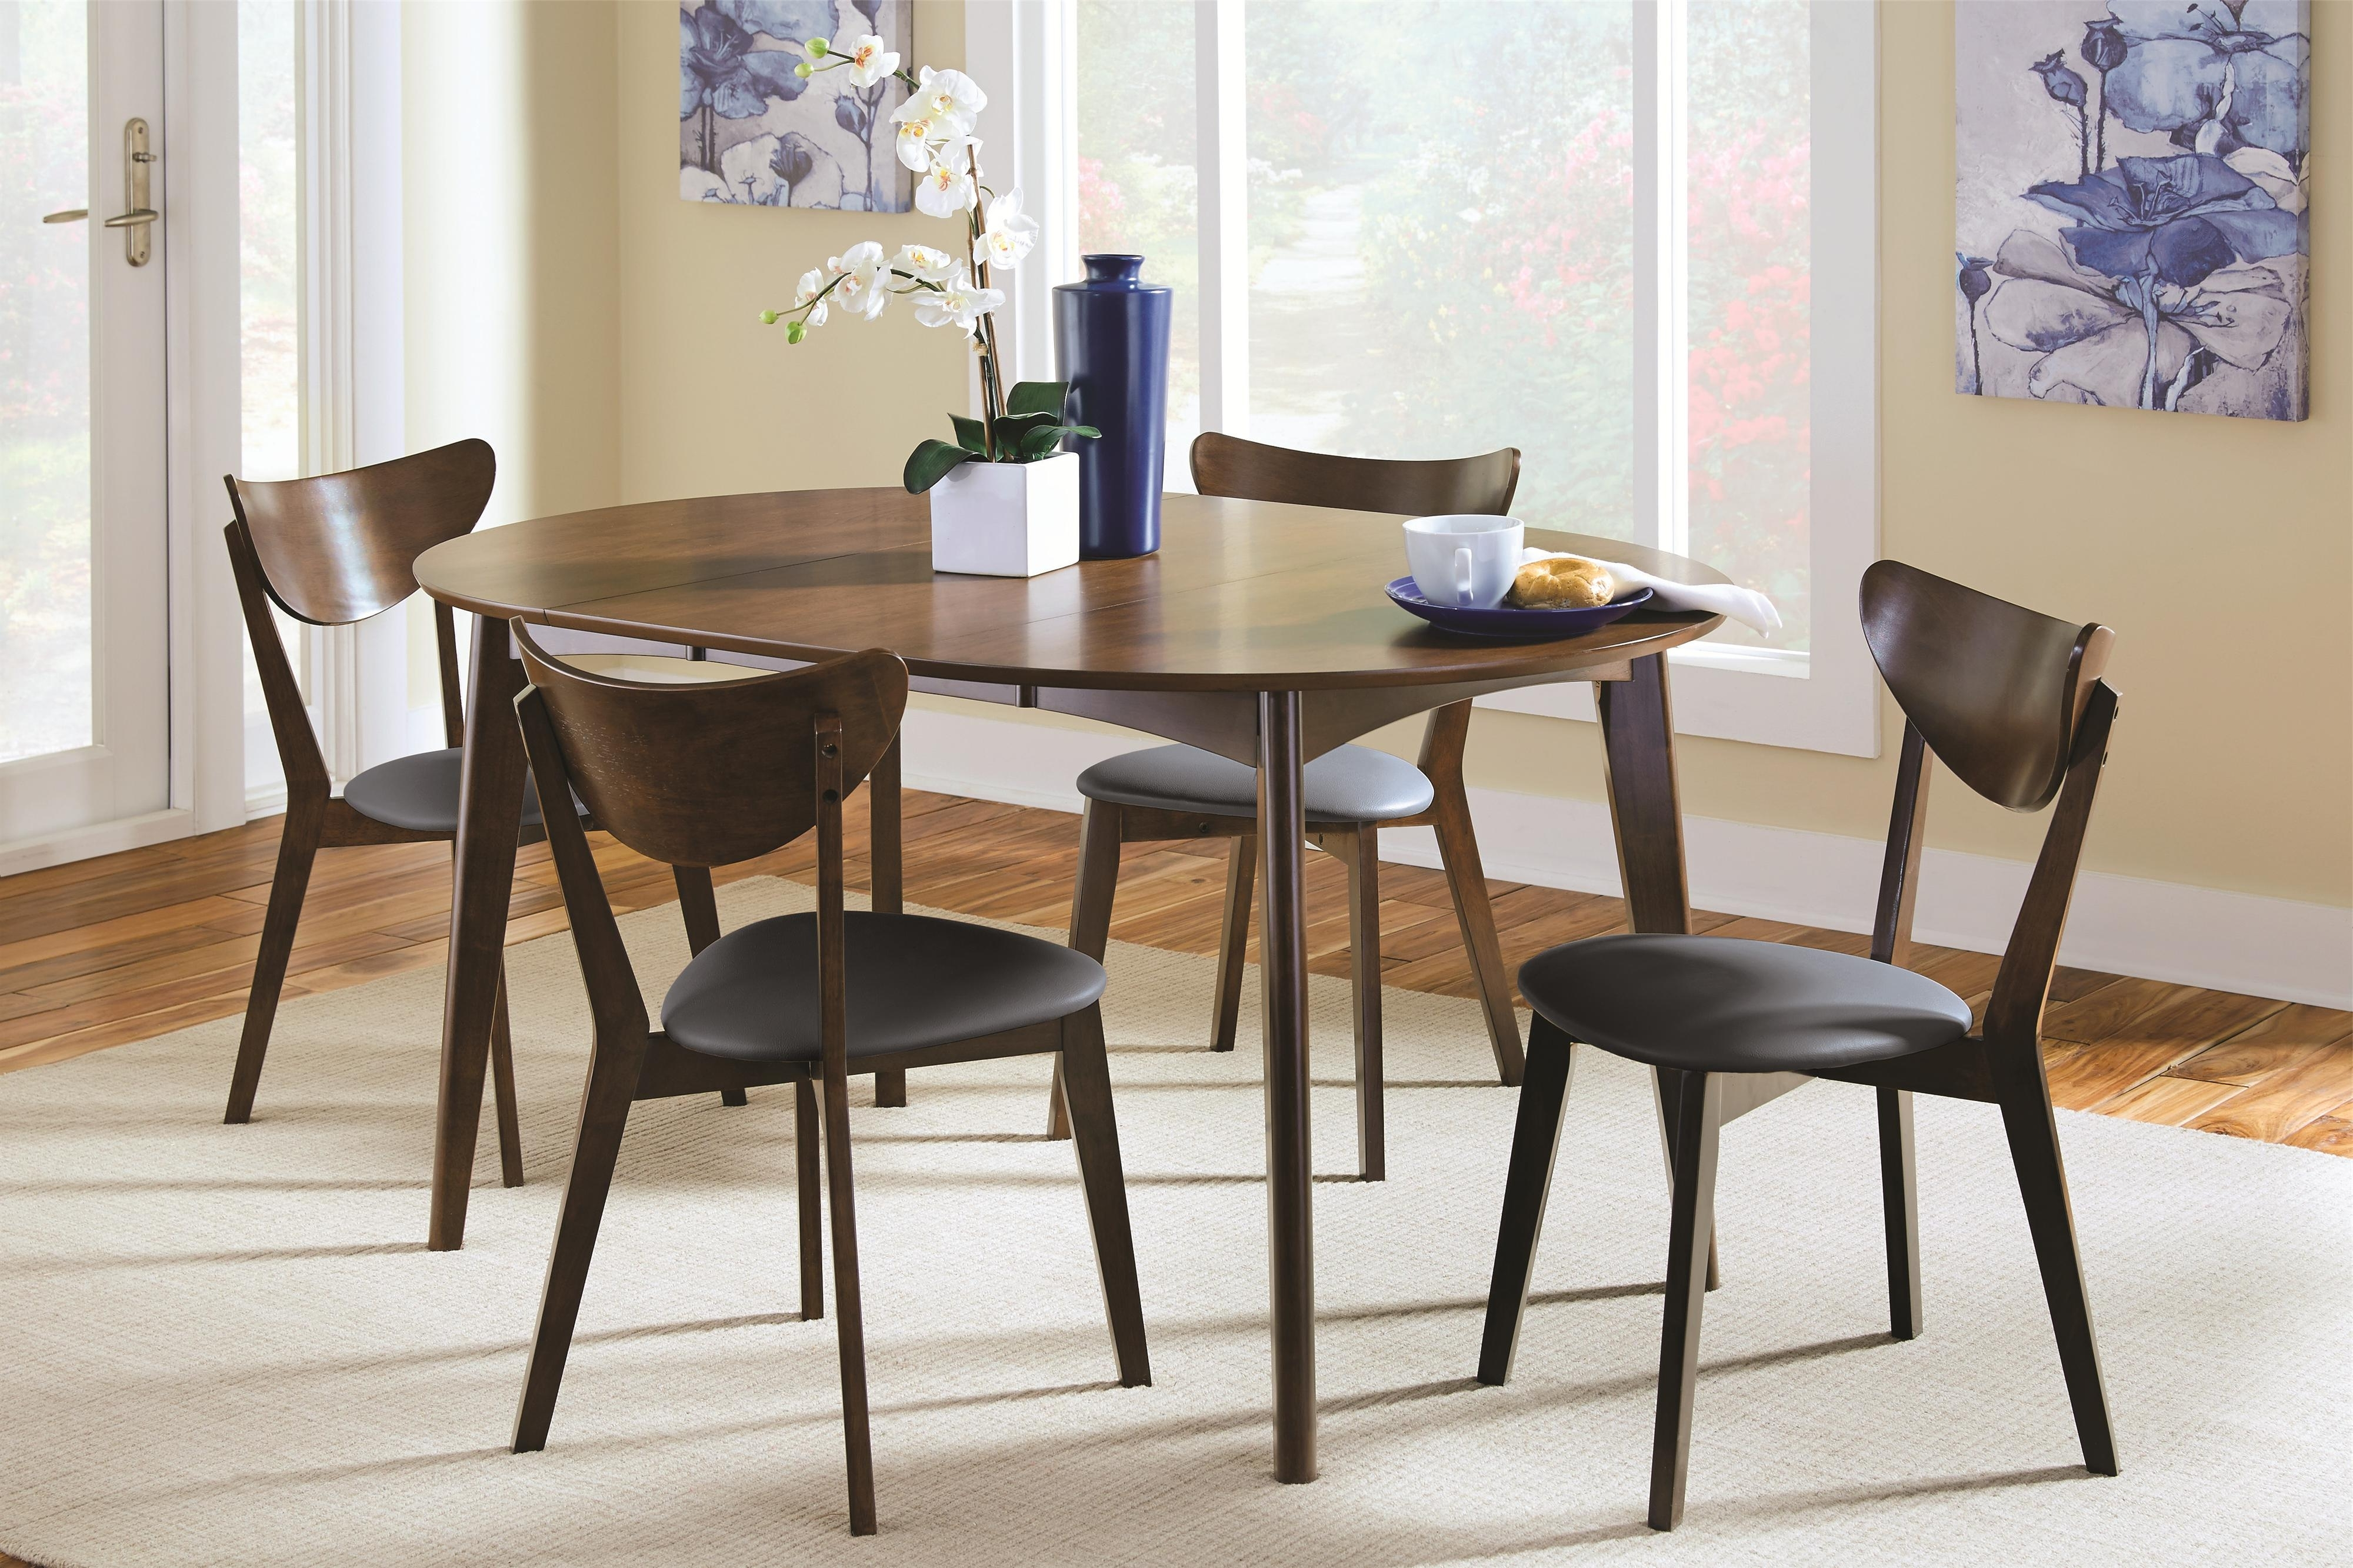 Kitchen Dining Tables And Chairs With Most Recent Coaster Malone Mid Century Modern 5 Piece Solid Wood Dining Set (View 12 of 25)